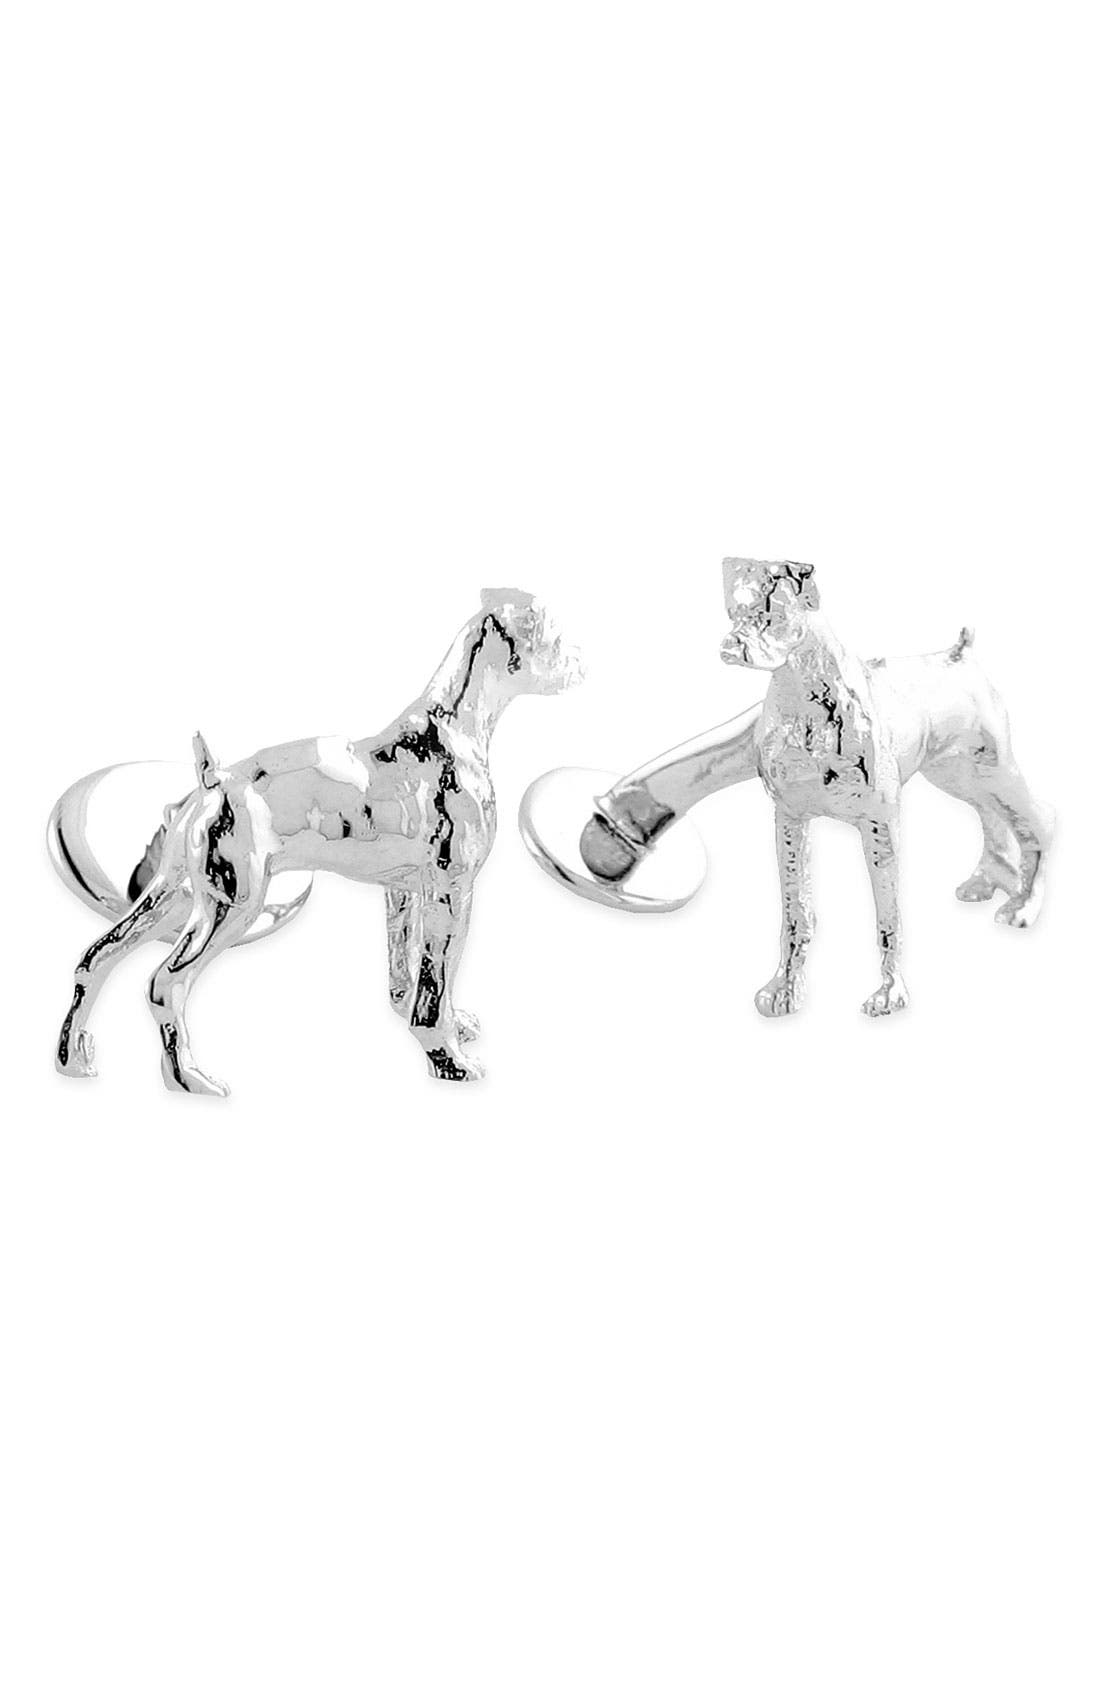 Alternate Image 1 Selected - David Donahue 'Boxer' Sterling Silver Cuff Links